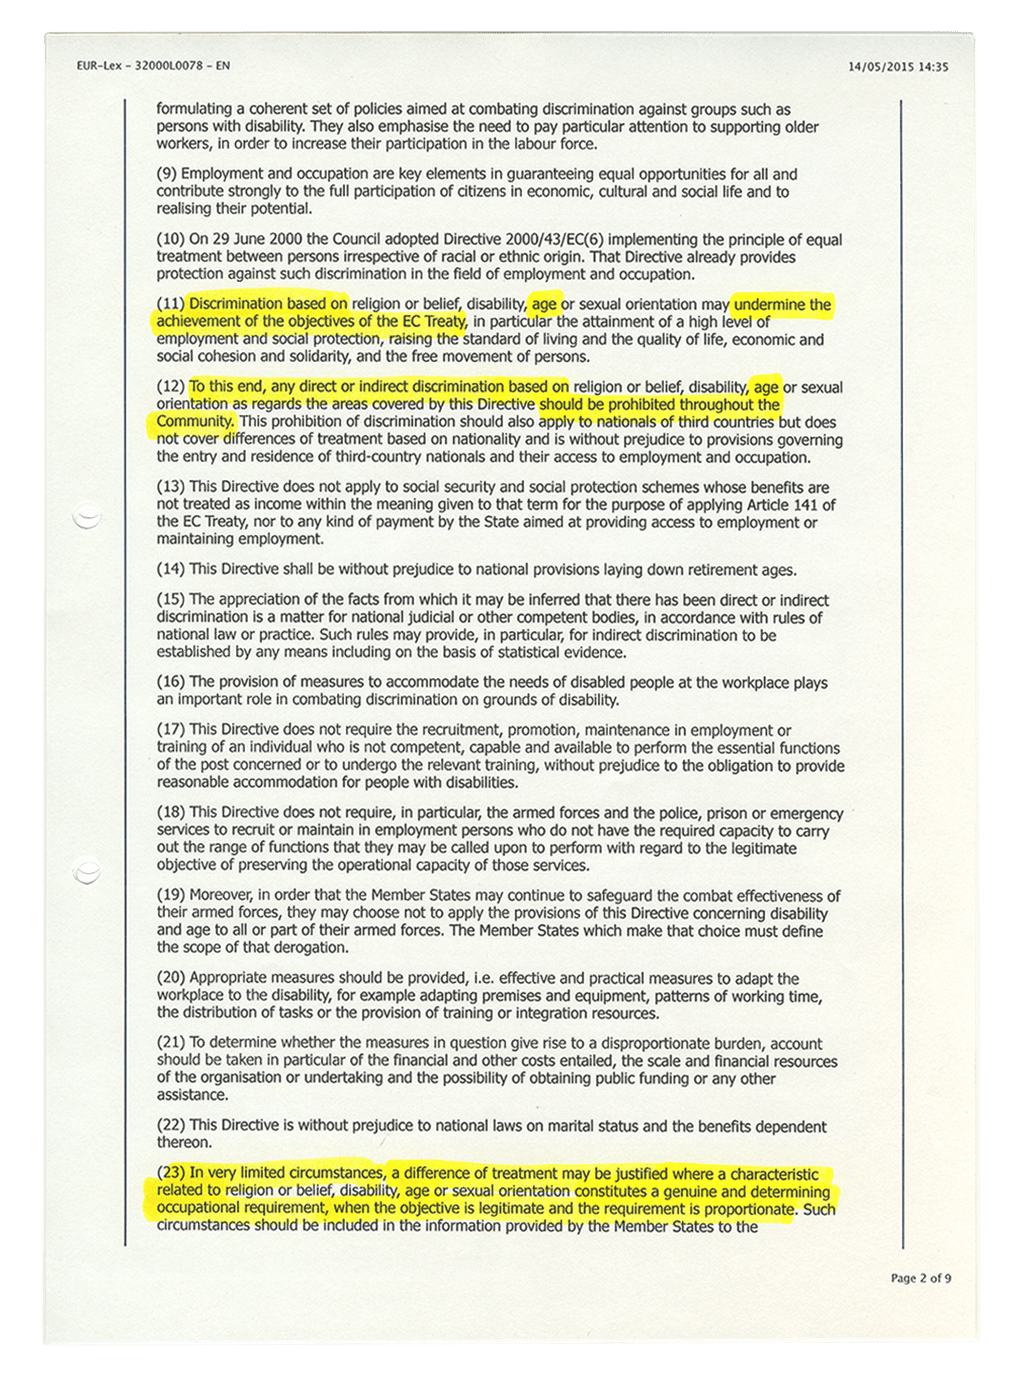 Scanned document. It states the rules on which the European Treaty is based. Highlighted with a marker are passages that deal with discrimination on basis of age.